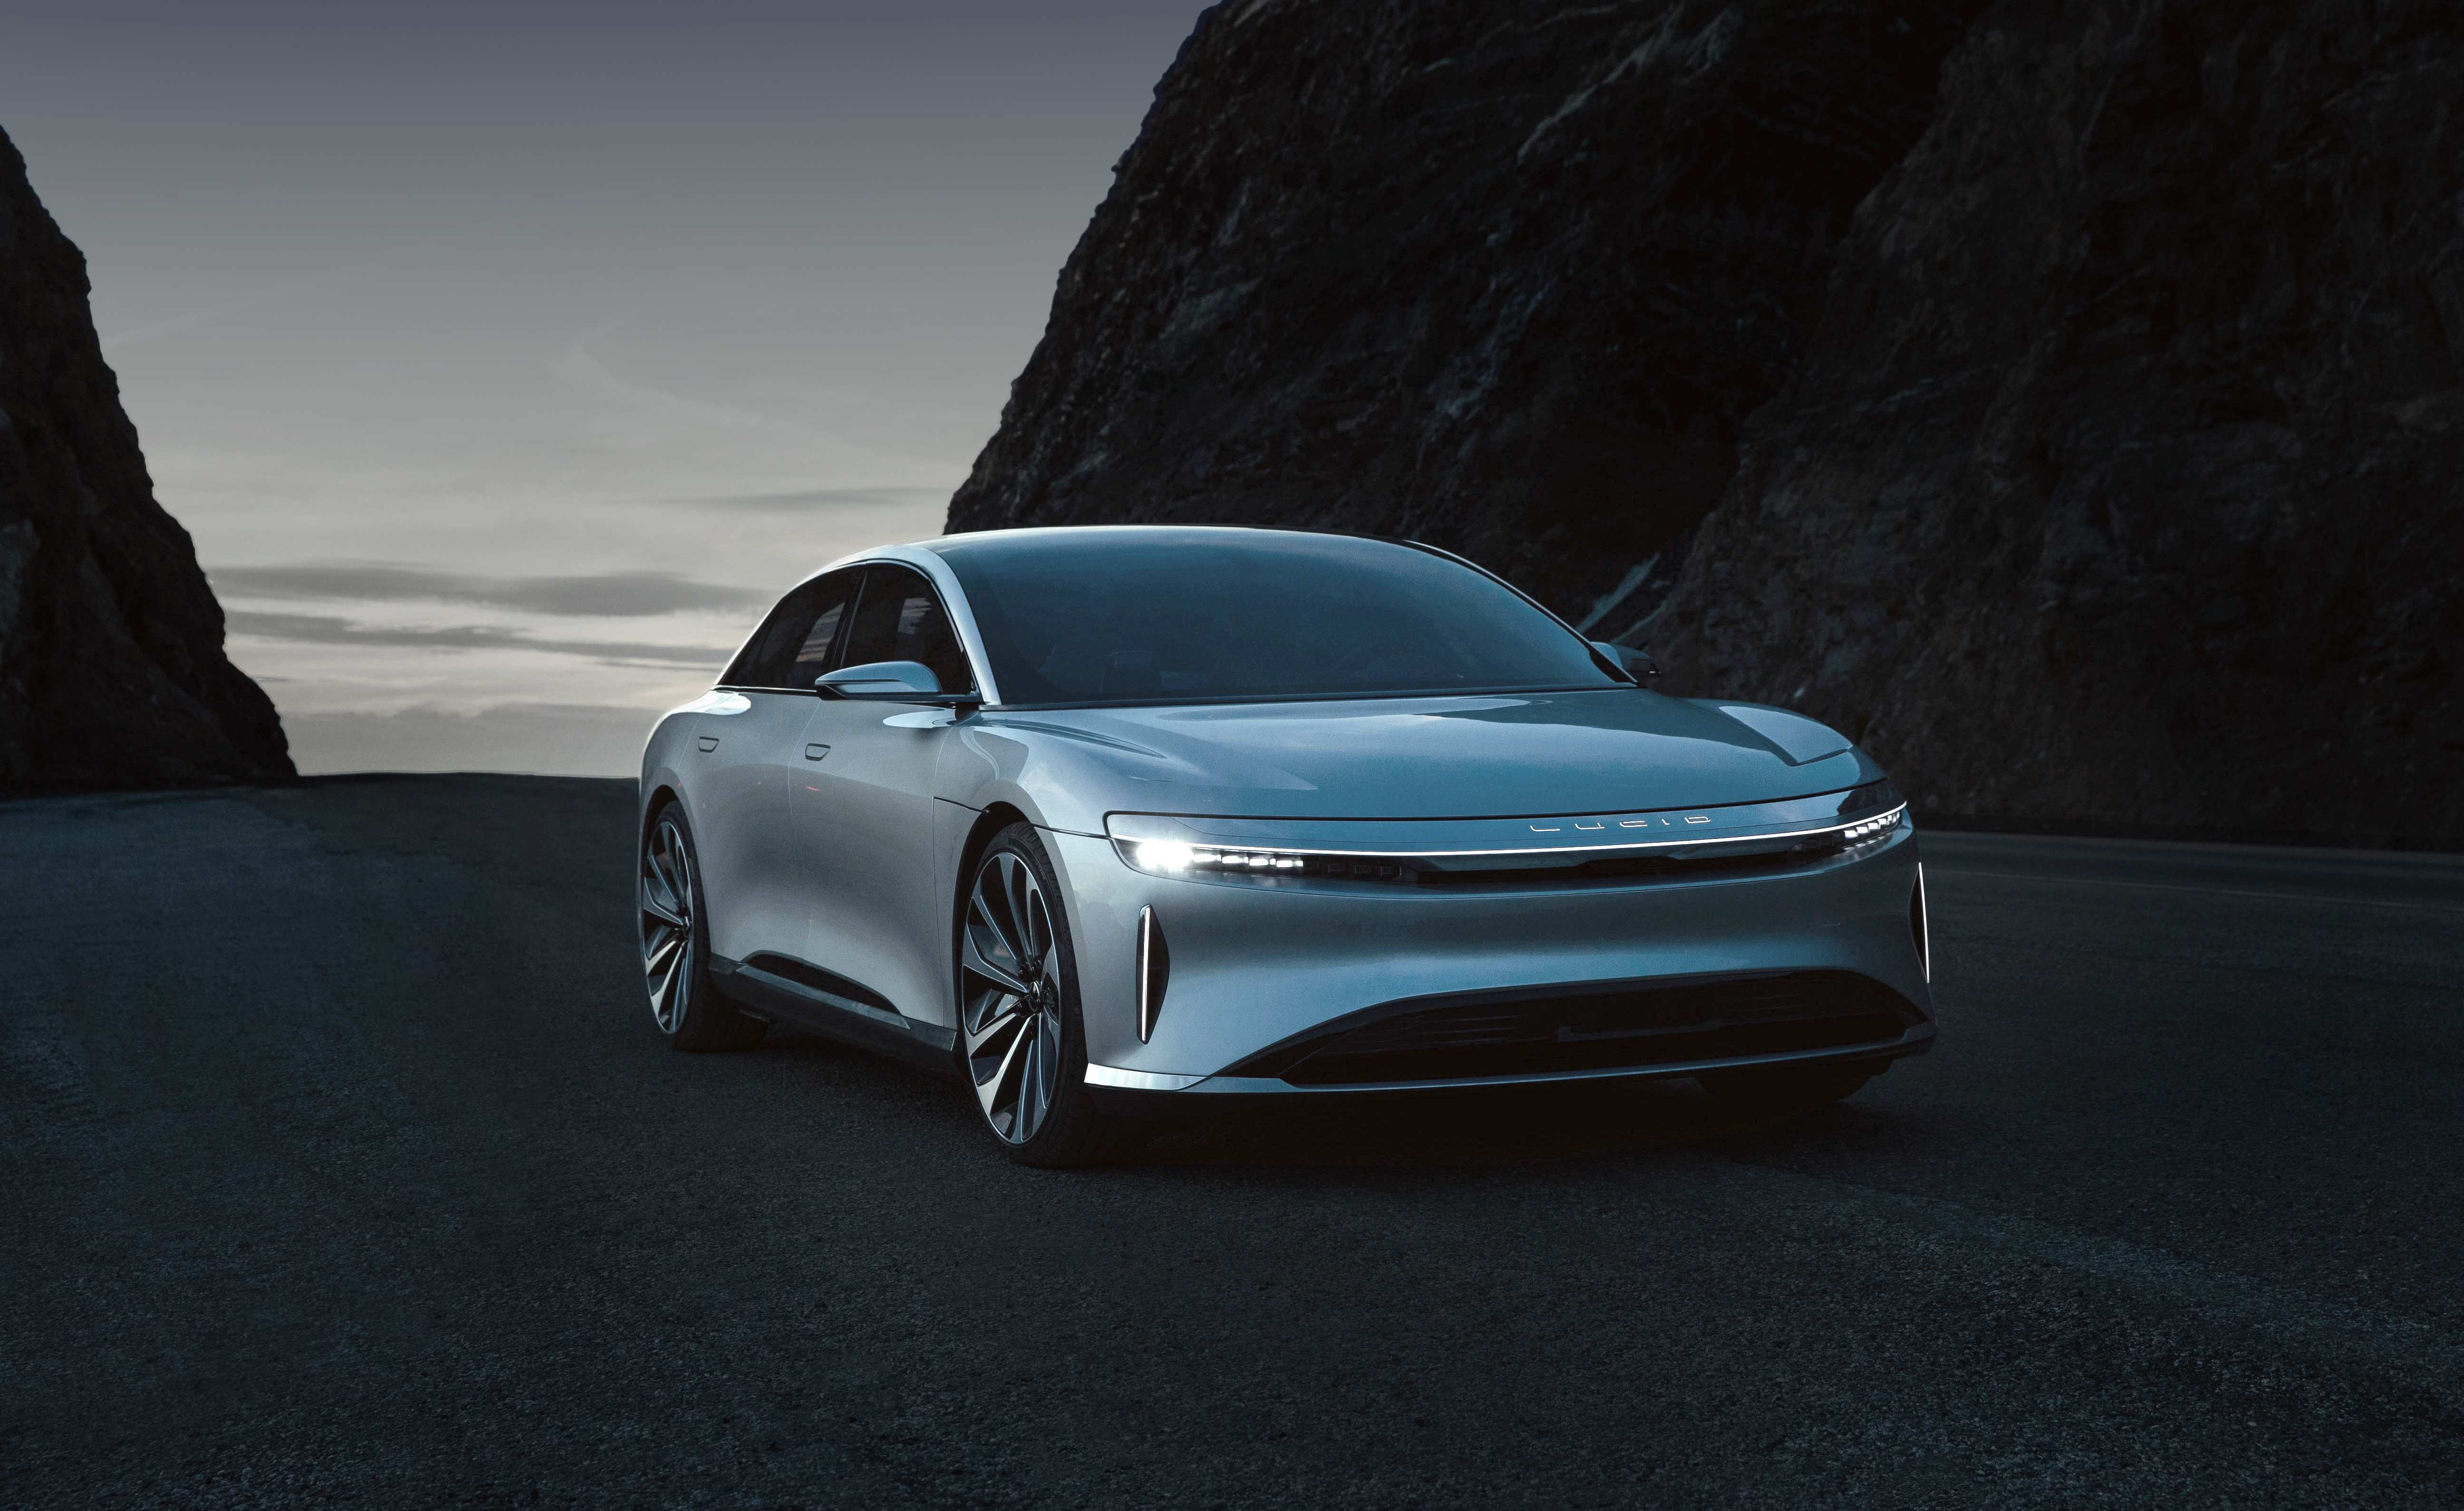 75 Best Review 2019 Tesla Lucid New Review with 2019 Tesla Lucid